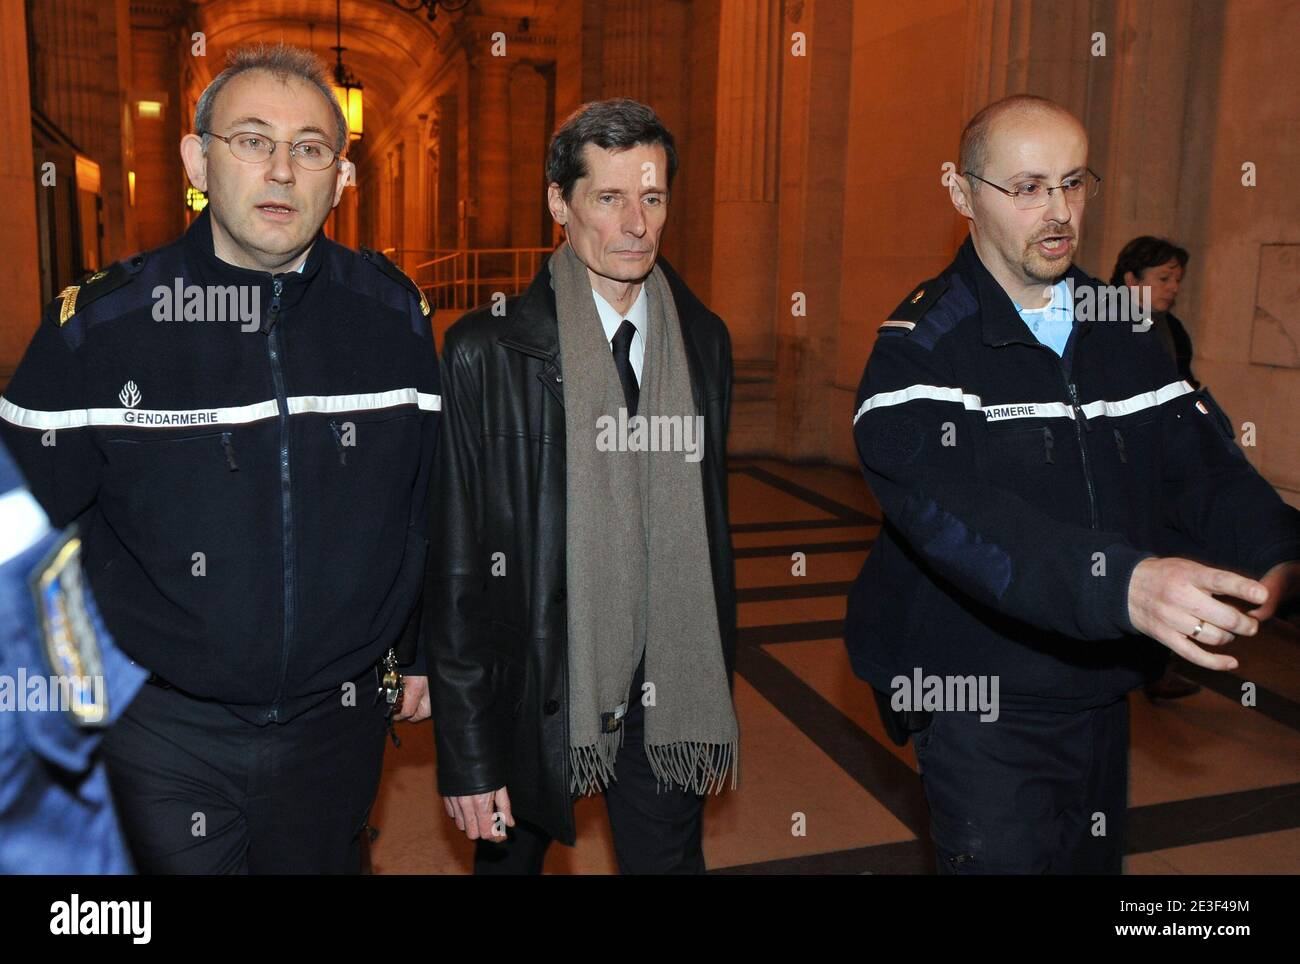 Witness and French police officer Didier Vinolas leaves Paris courthouse after being heard during the trial of Yvan Colonna in Paris, France, on February 16, 2009 tried for the assassination of Corsica's prefect Claude Erignac in 1998. The appeal process is calling for a new investigation following the release of fresh information from Vinolas. Photo by Mousse/ABACAPRESS.COM Stock Photo